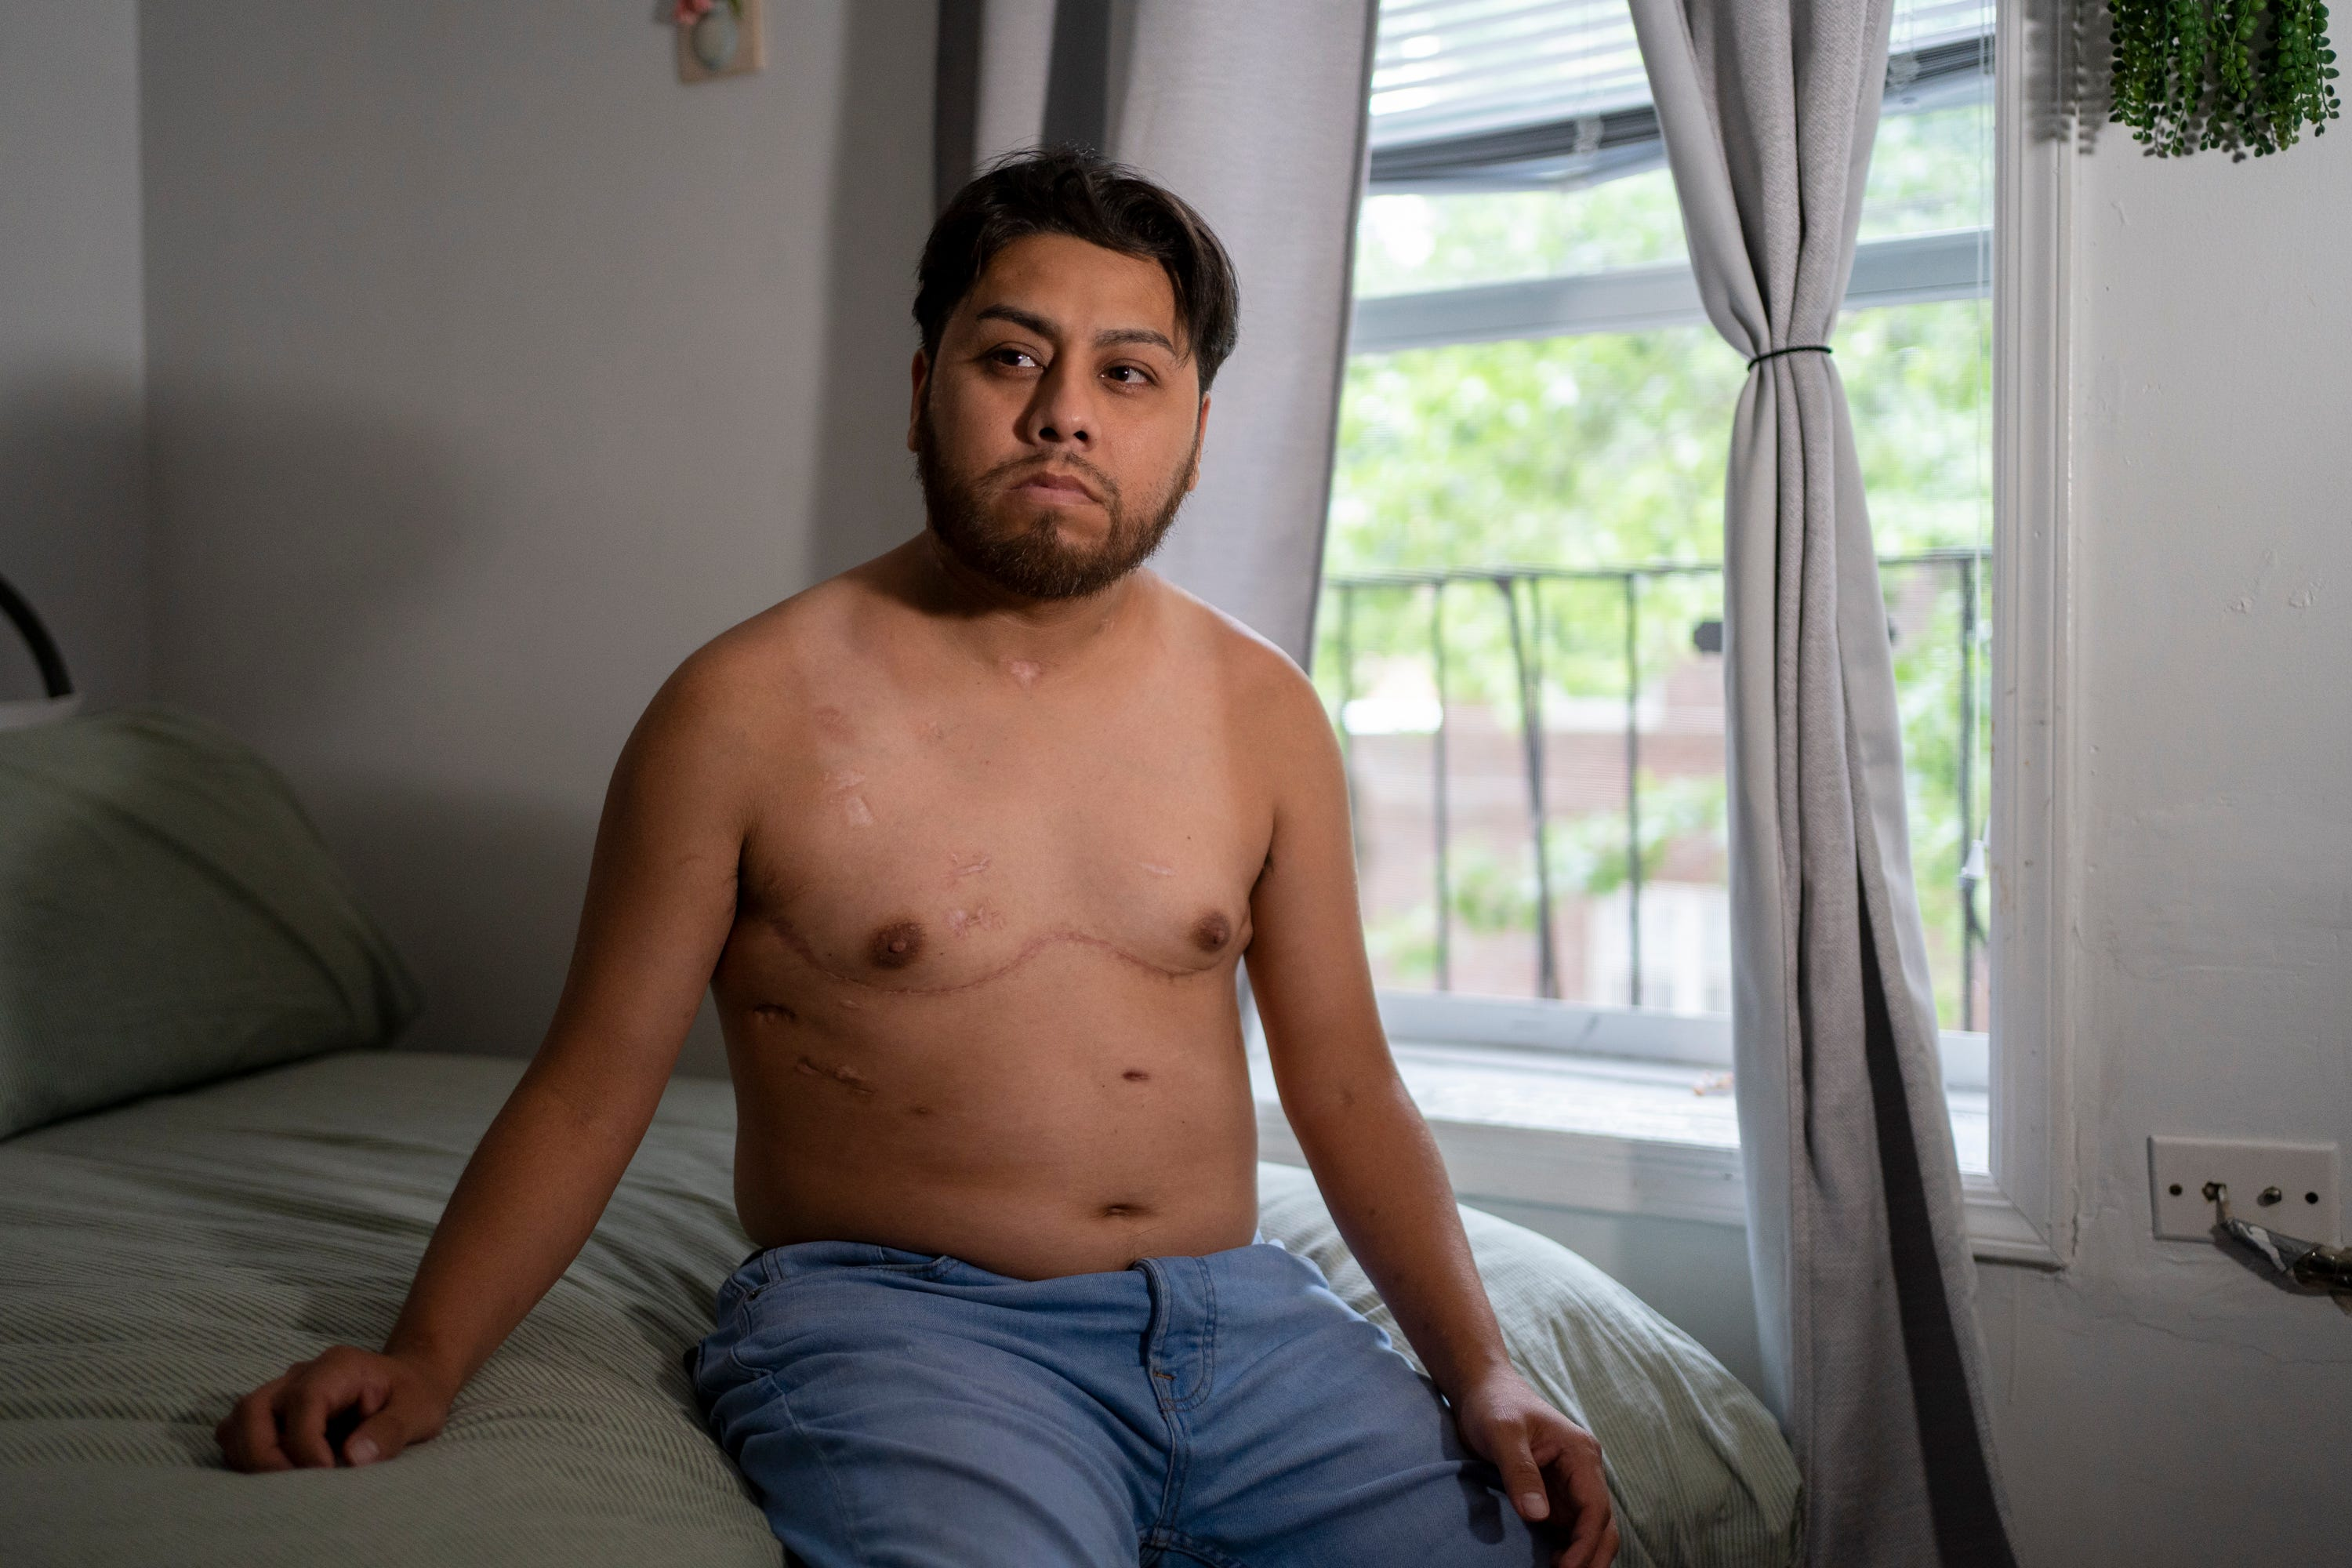 """Aug 4, 2021; New York, NY, USA; Edwin """"Avi"""" Luna shows his scars from his double-lung transplant surgery back in January of 2021. Due to COVID-19, Luna spent 11 months in the hospital. He was only 31-years-old when he caught the disease. Now at 33, Luna remains determined to work hard as he continues to recover. Mandatory credit: Michelle Hanks- USA TODAY"""